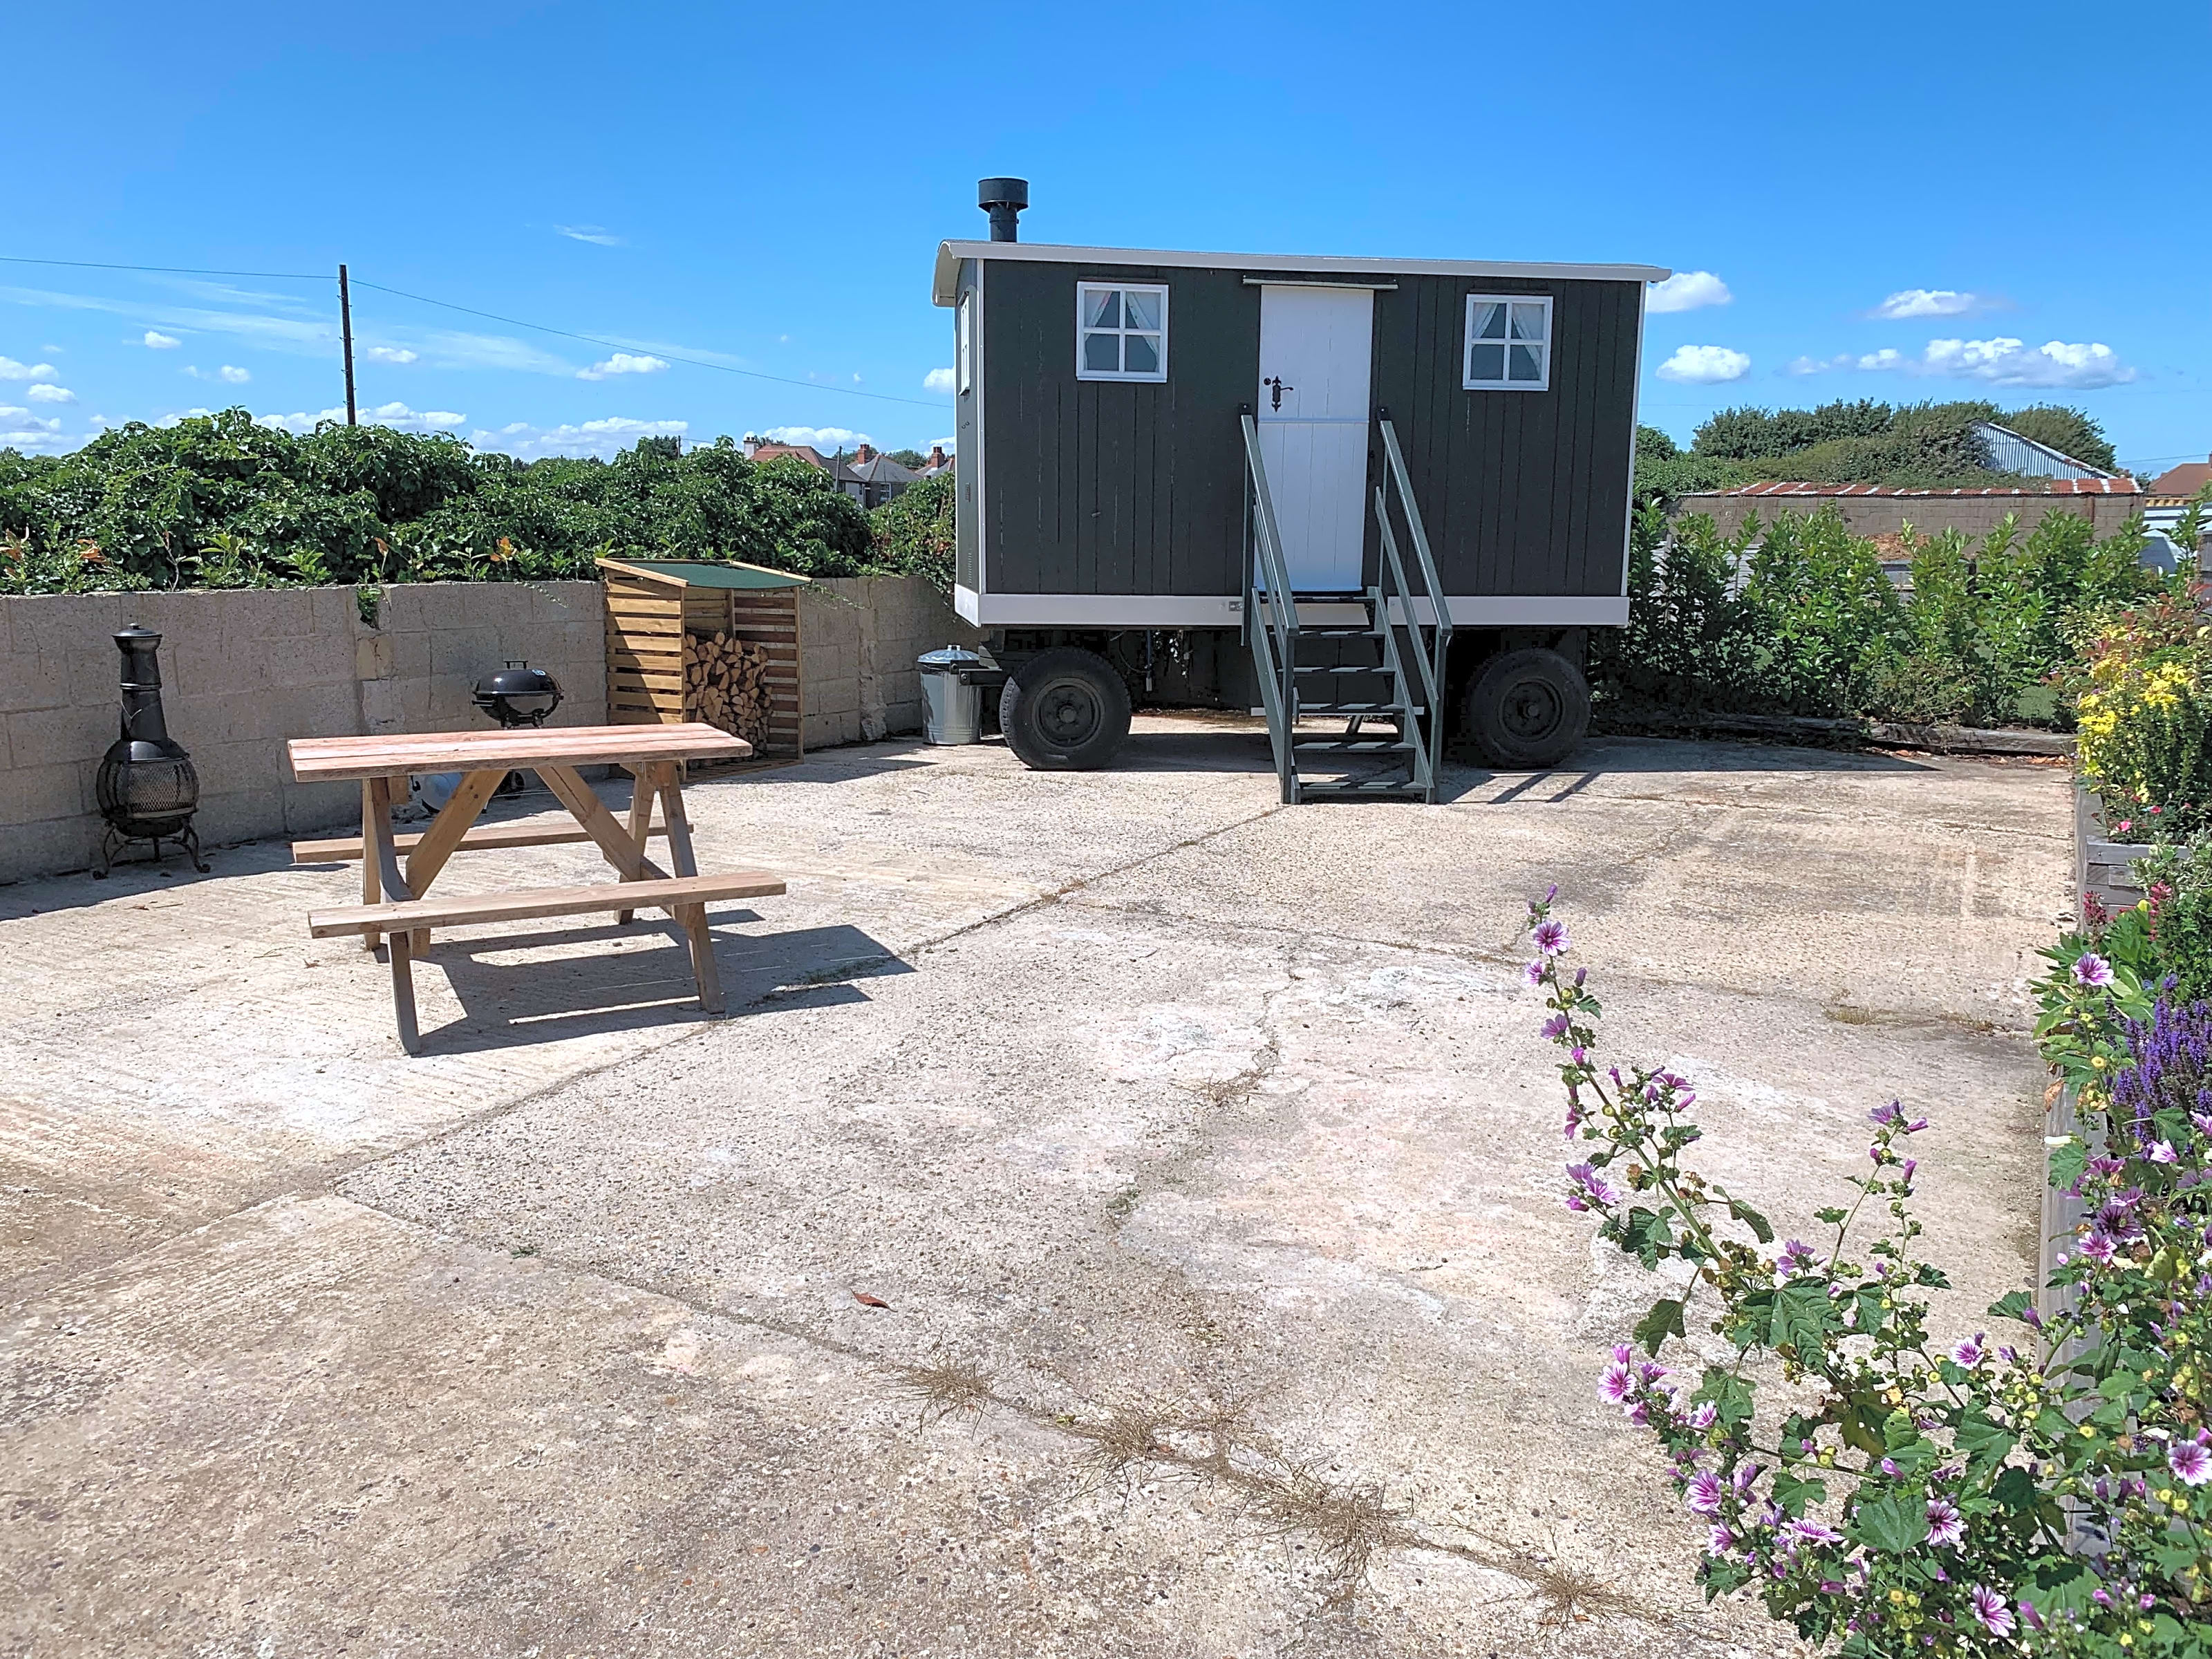 Delf Glamping Hut, Sandwich - Updated 2019 prices - Pitchup®